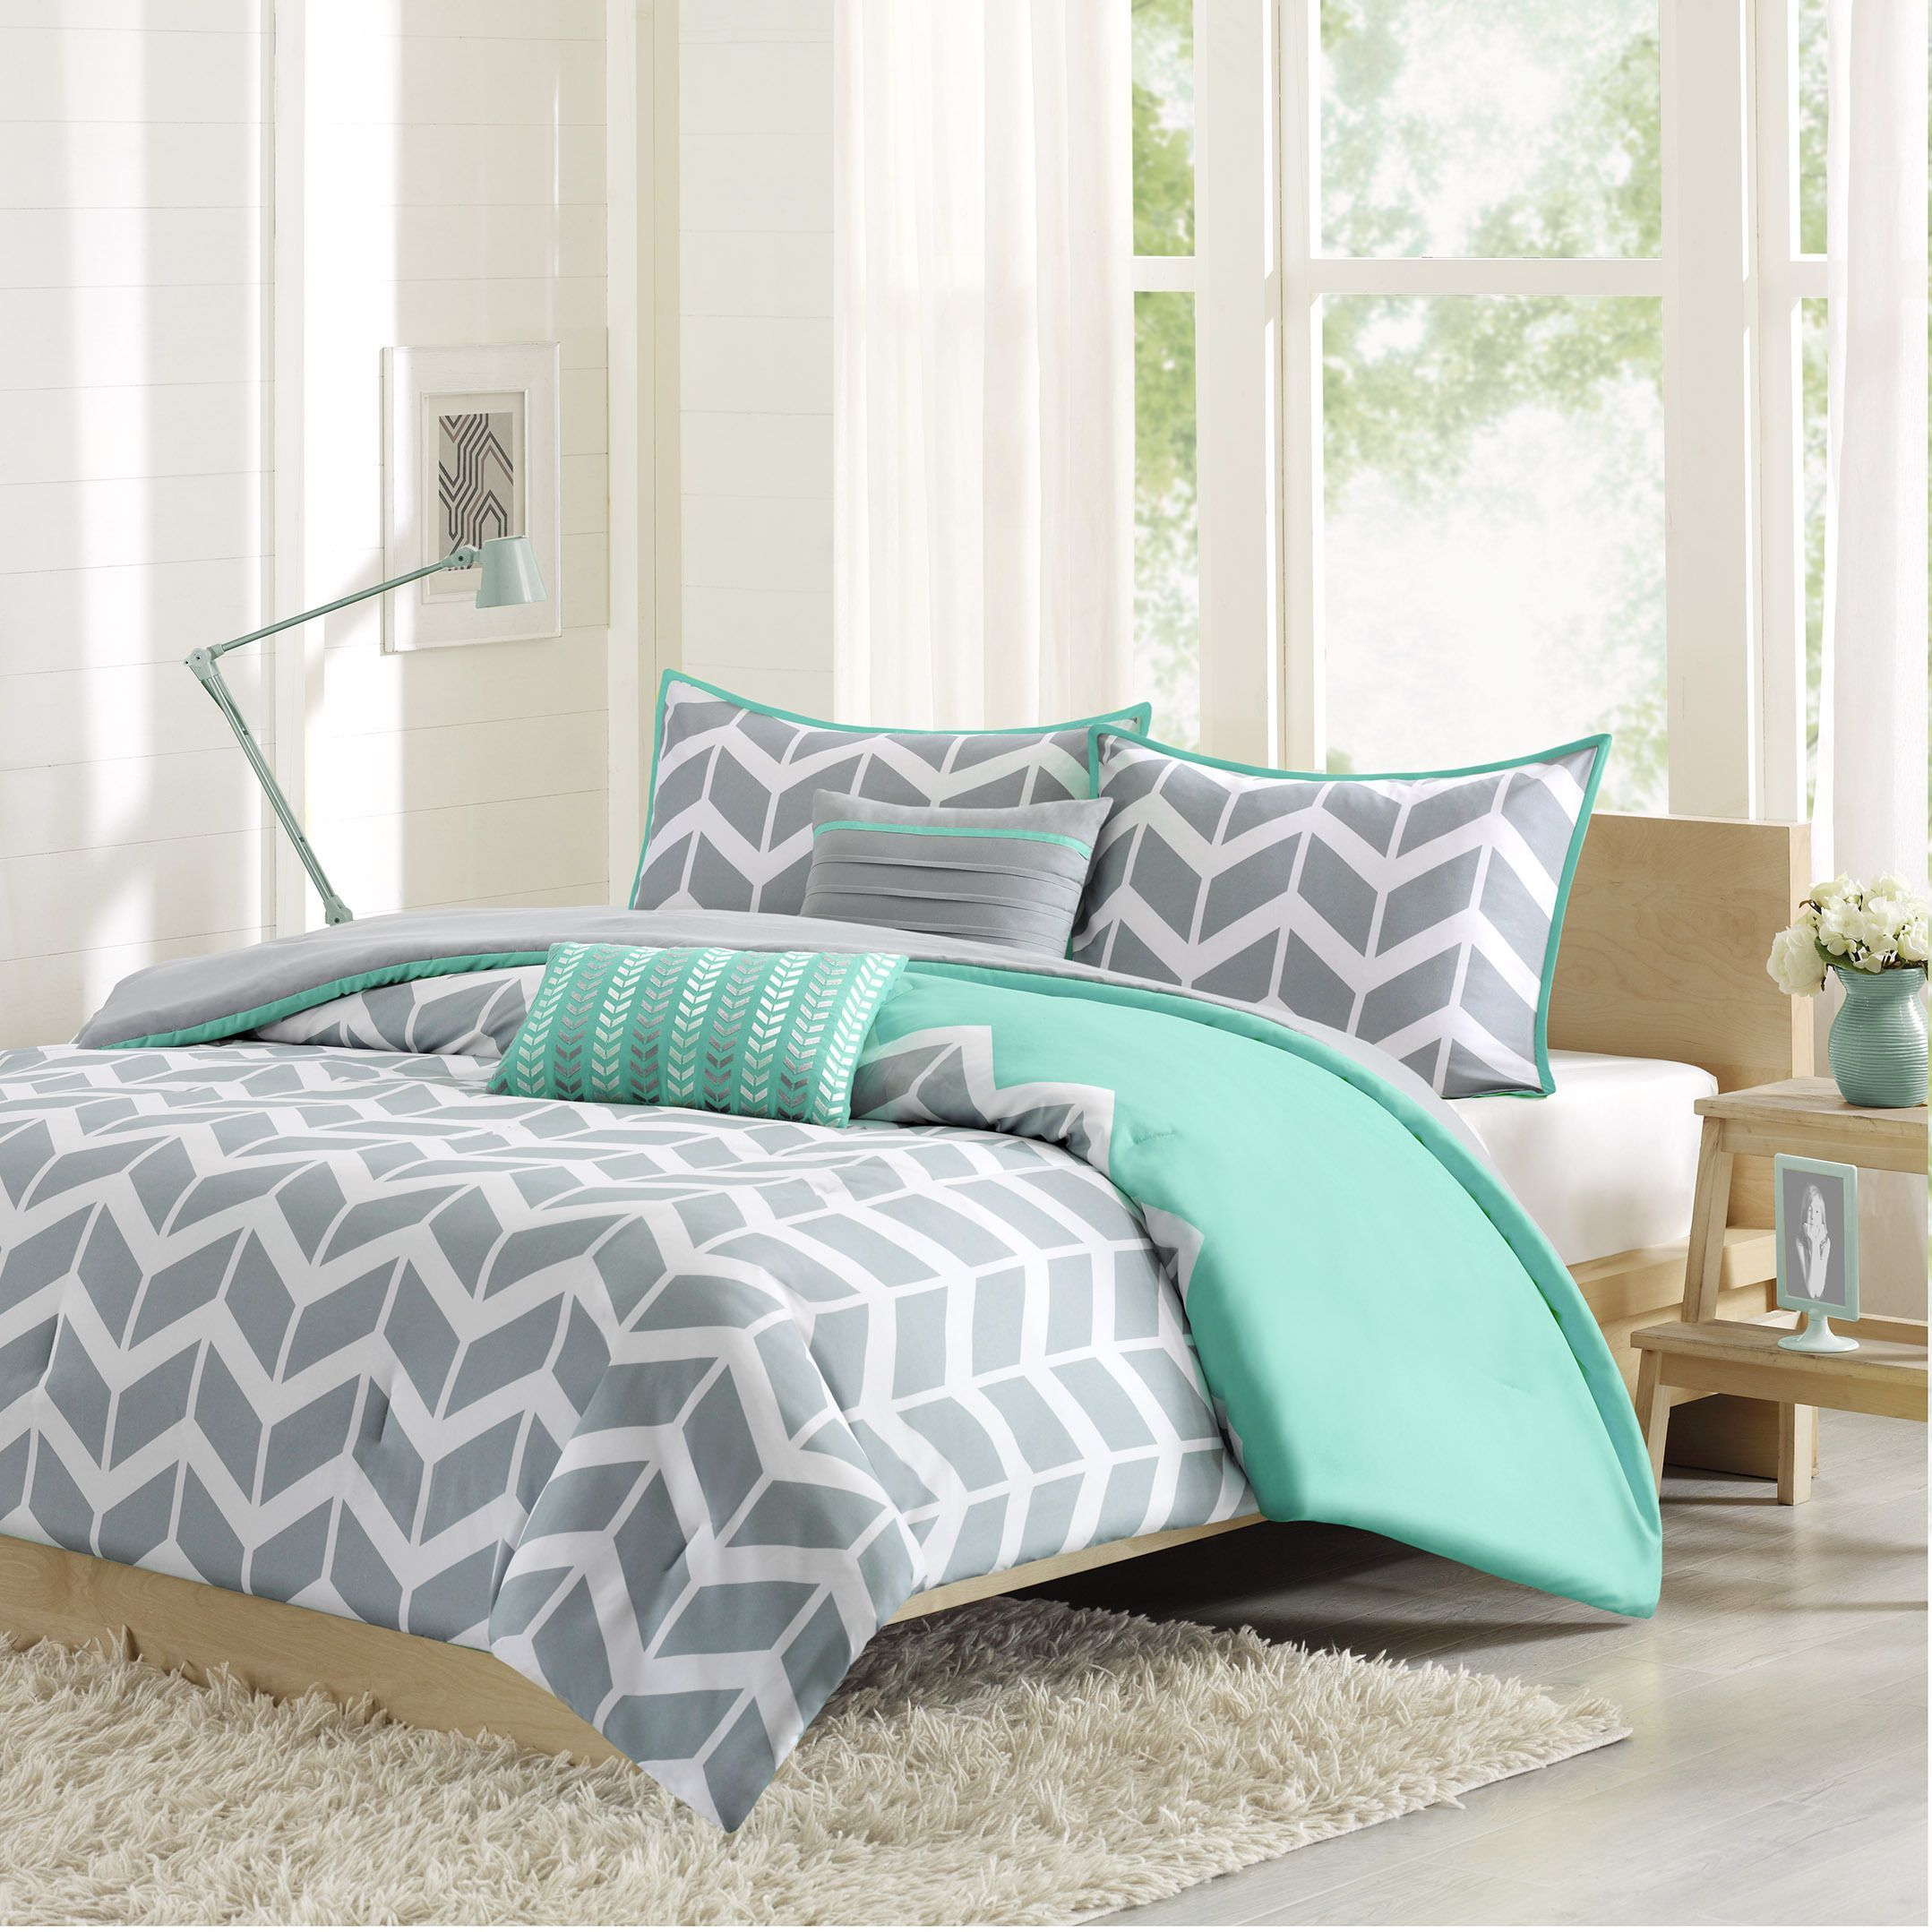 Intelligent Design Laila 5 Piece Comforter Set   Overstock Shopping   The  Best Prices On ID Intelligent Designs Teen Comforter Sets